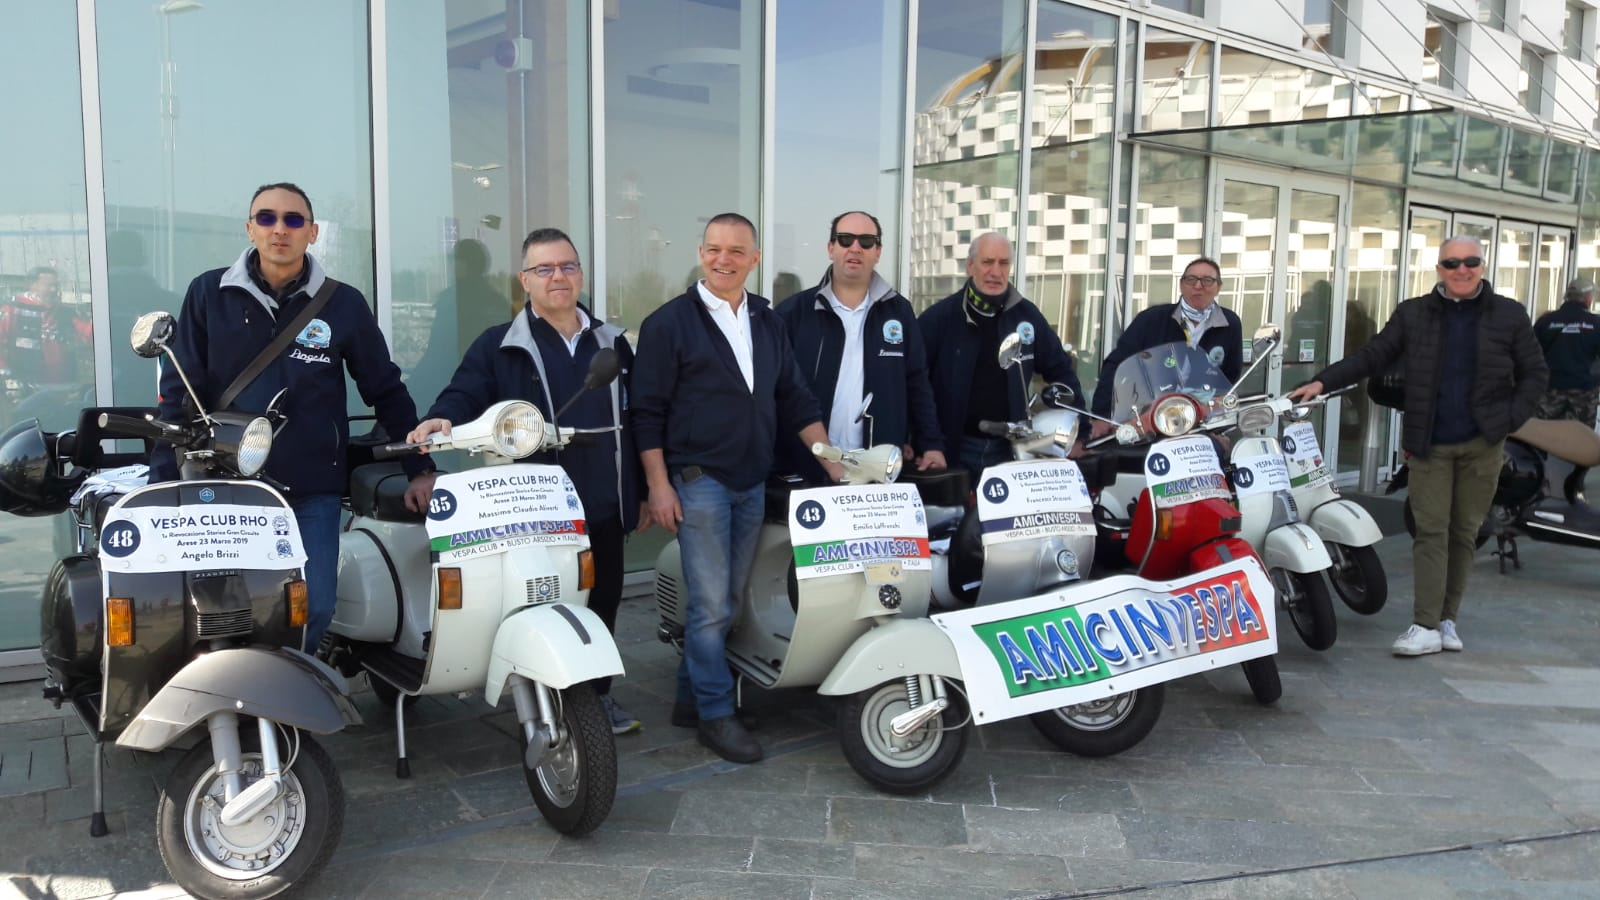 Members of Vespa Club Busto Arsizio Amicinvespa & Vespa Club Rho